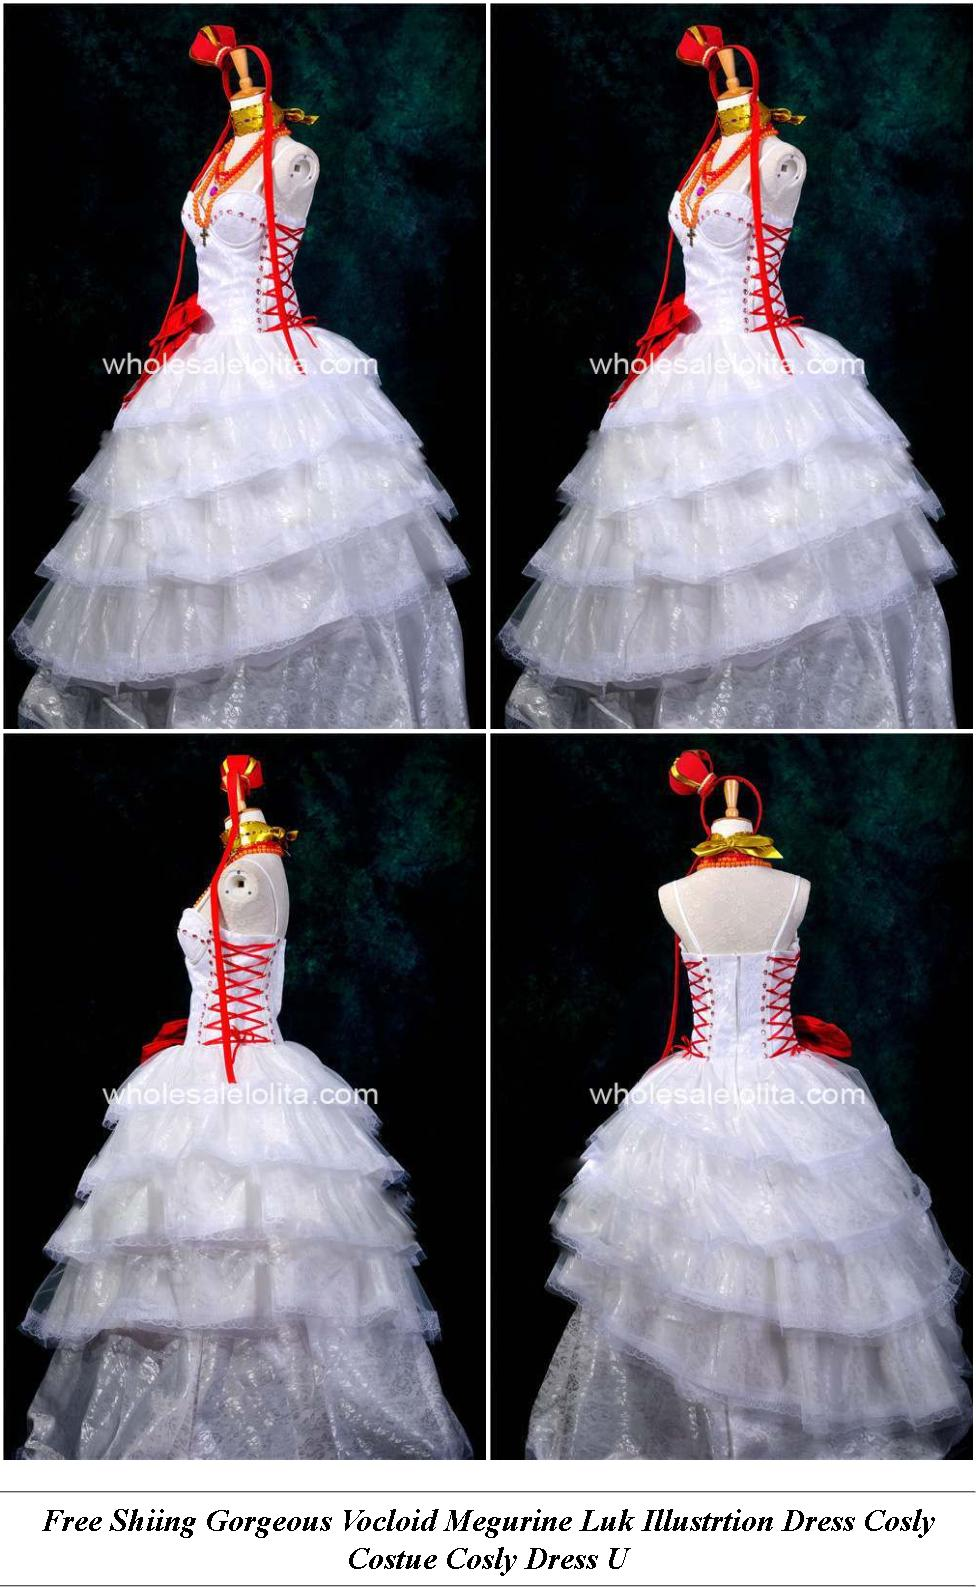 Pink And White Dressing Tale Stool - Cheap Designer Clothes Sale - Eautiful Prom Dresses For Sale